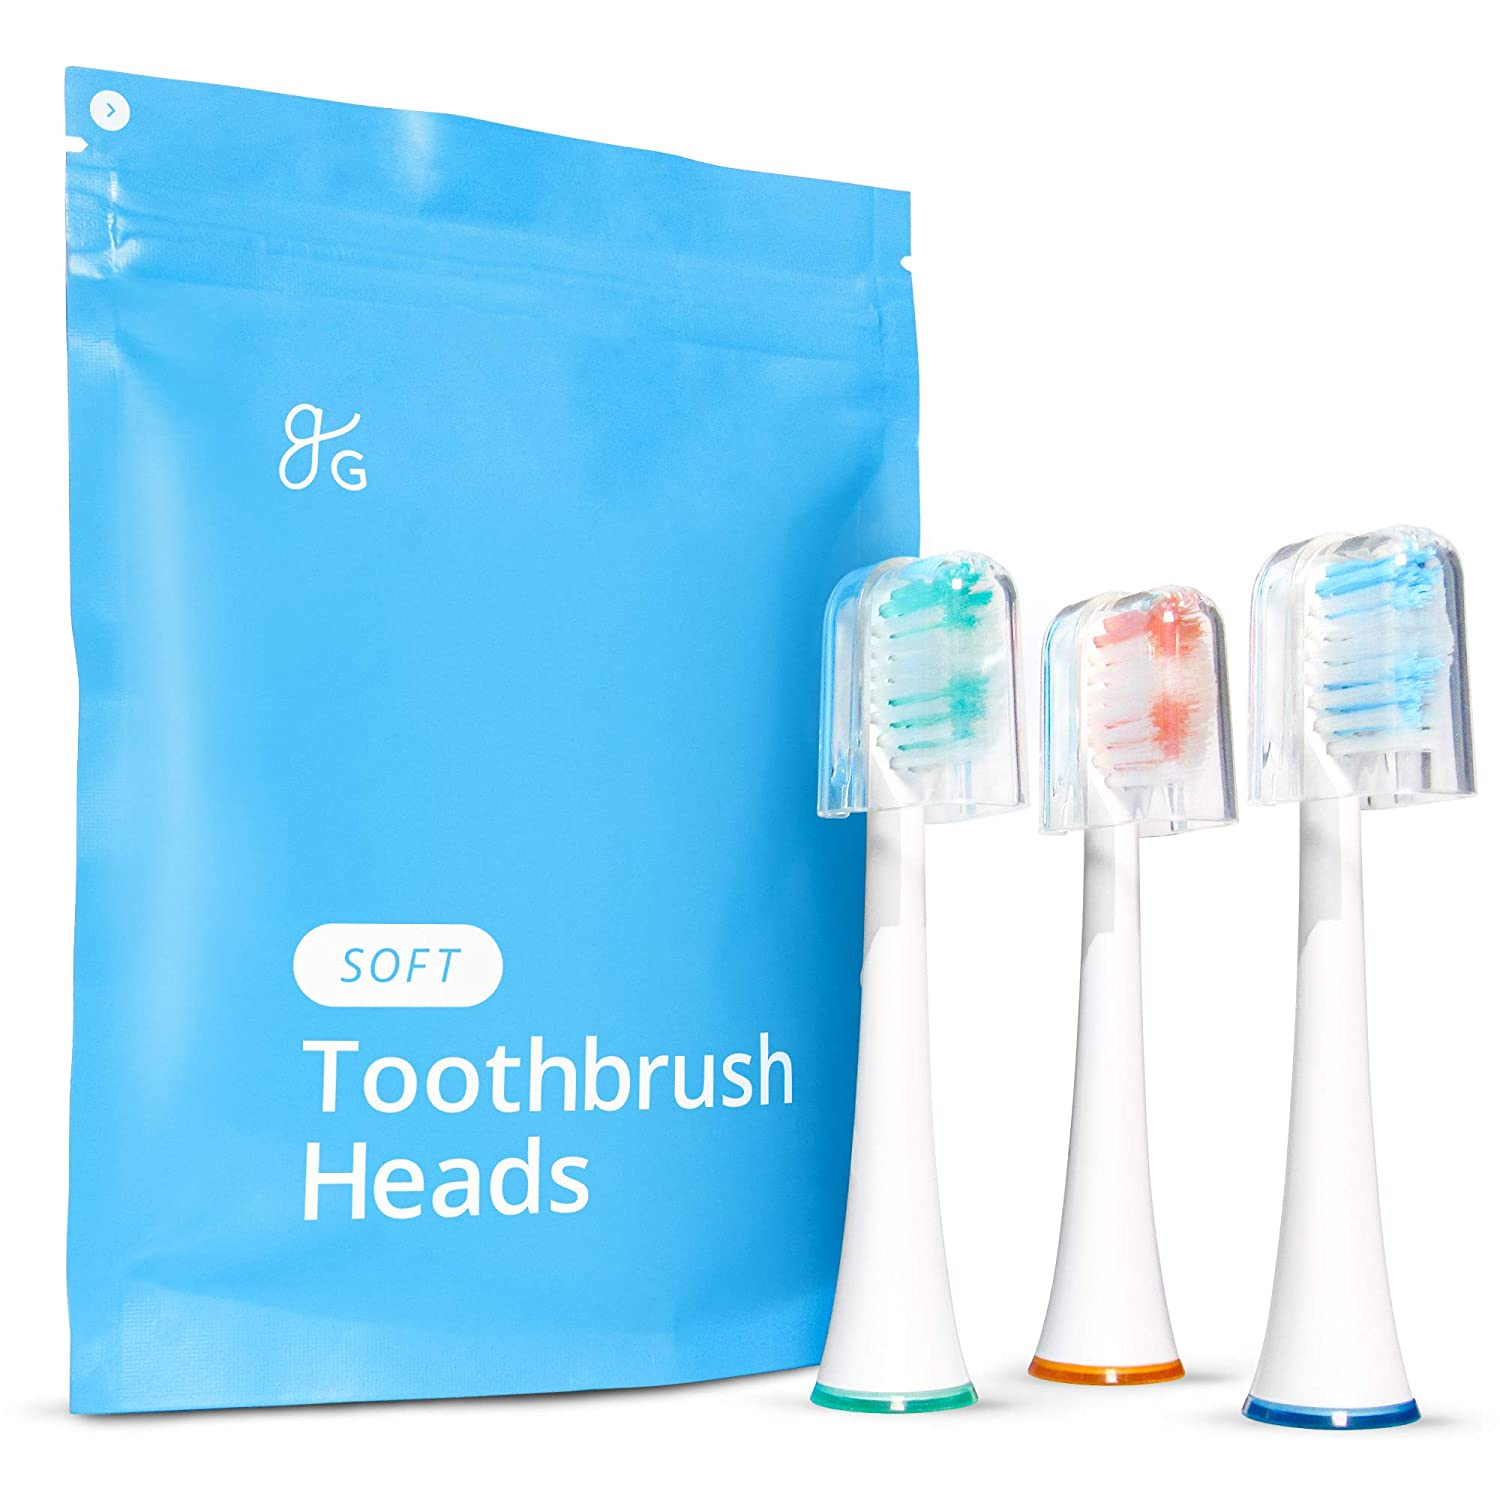 GreaterGoods Sonic Electric Replacement Heads, 3 Count for S/E Toothbrush, Only Works with gG Toothbrushes (Soft)